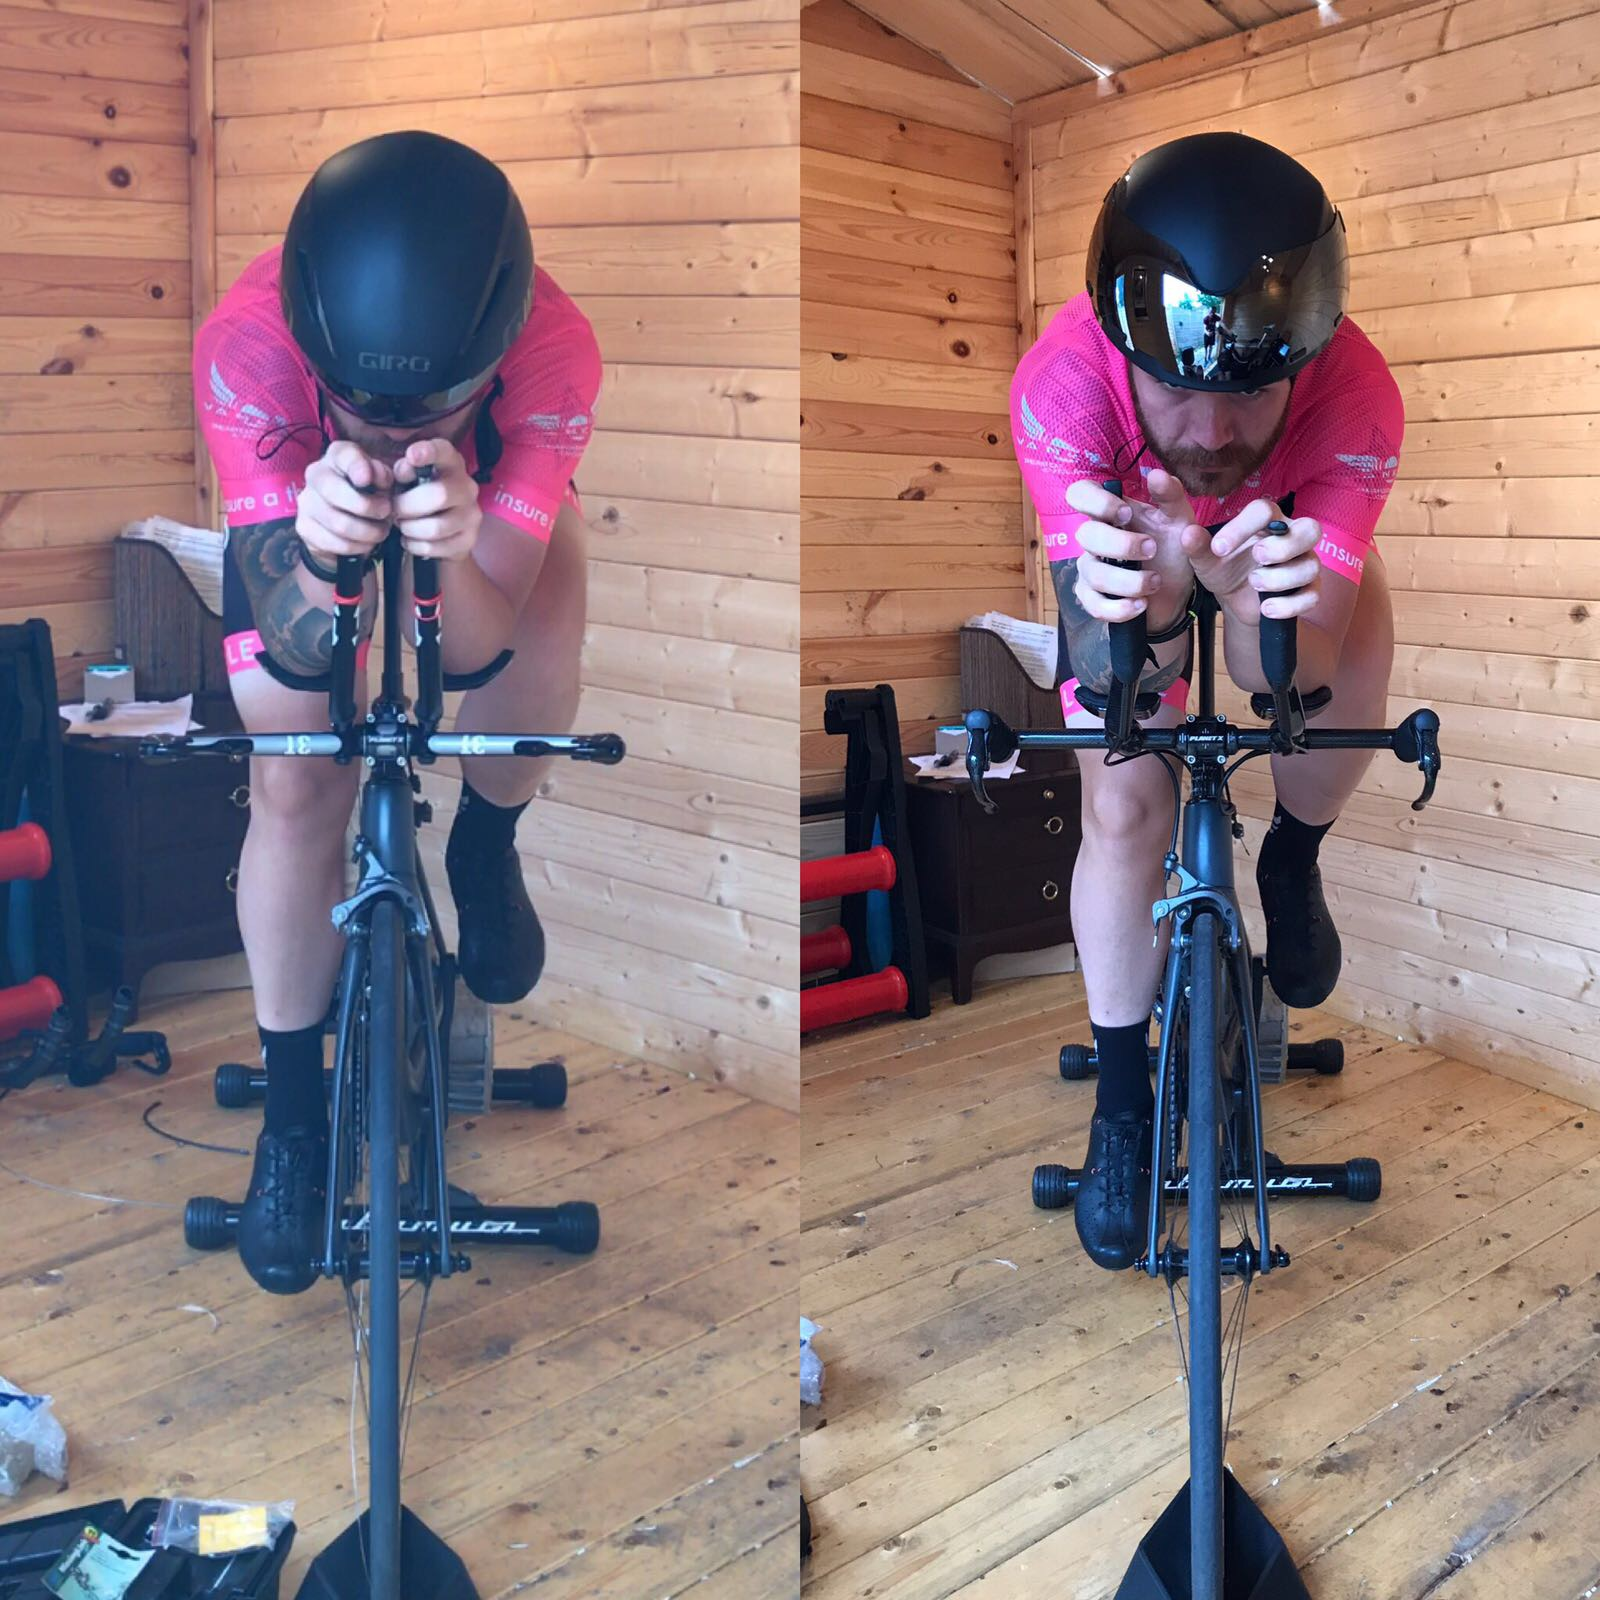 The left image (visor on) is the new ammended position.